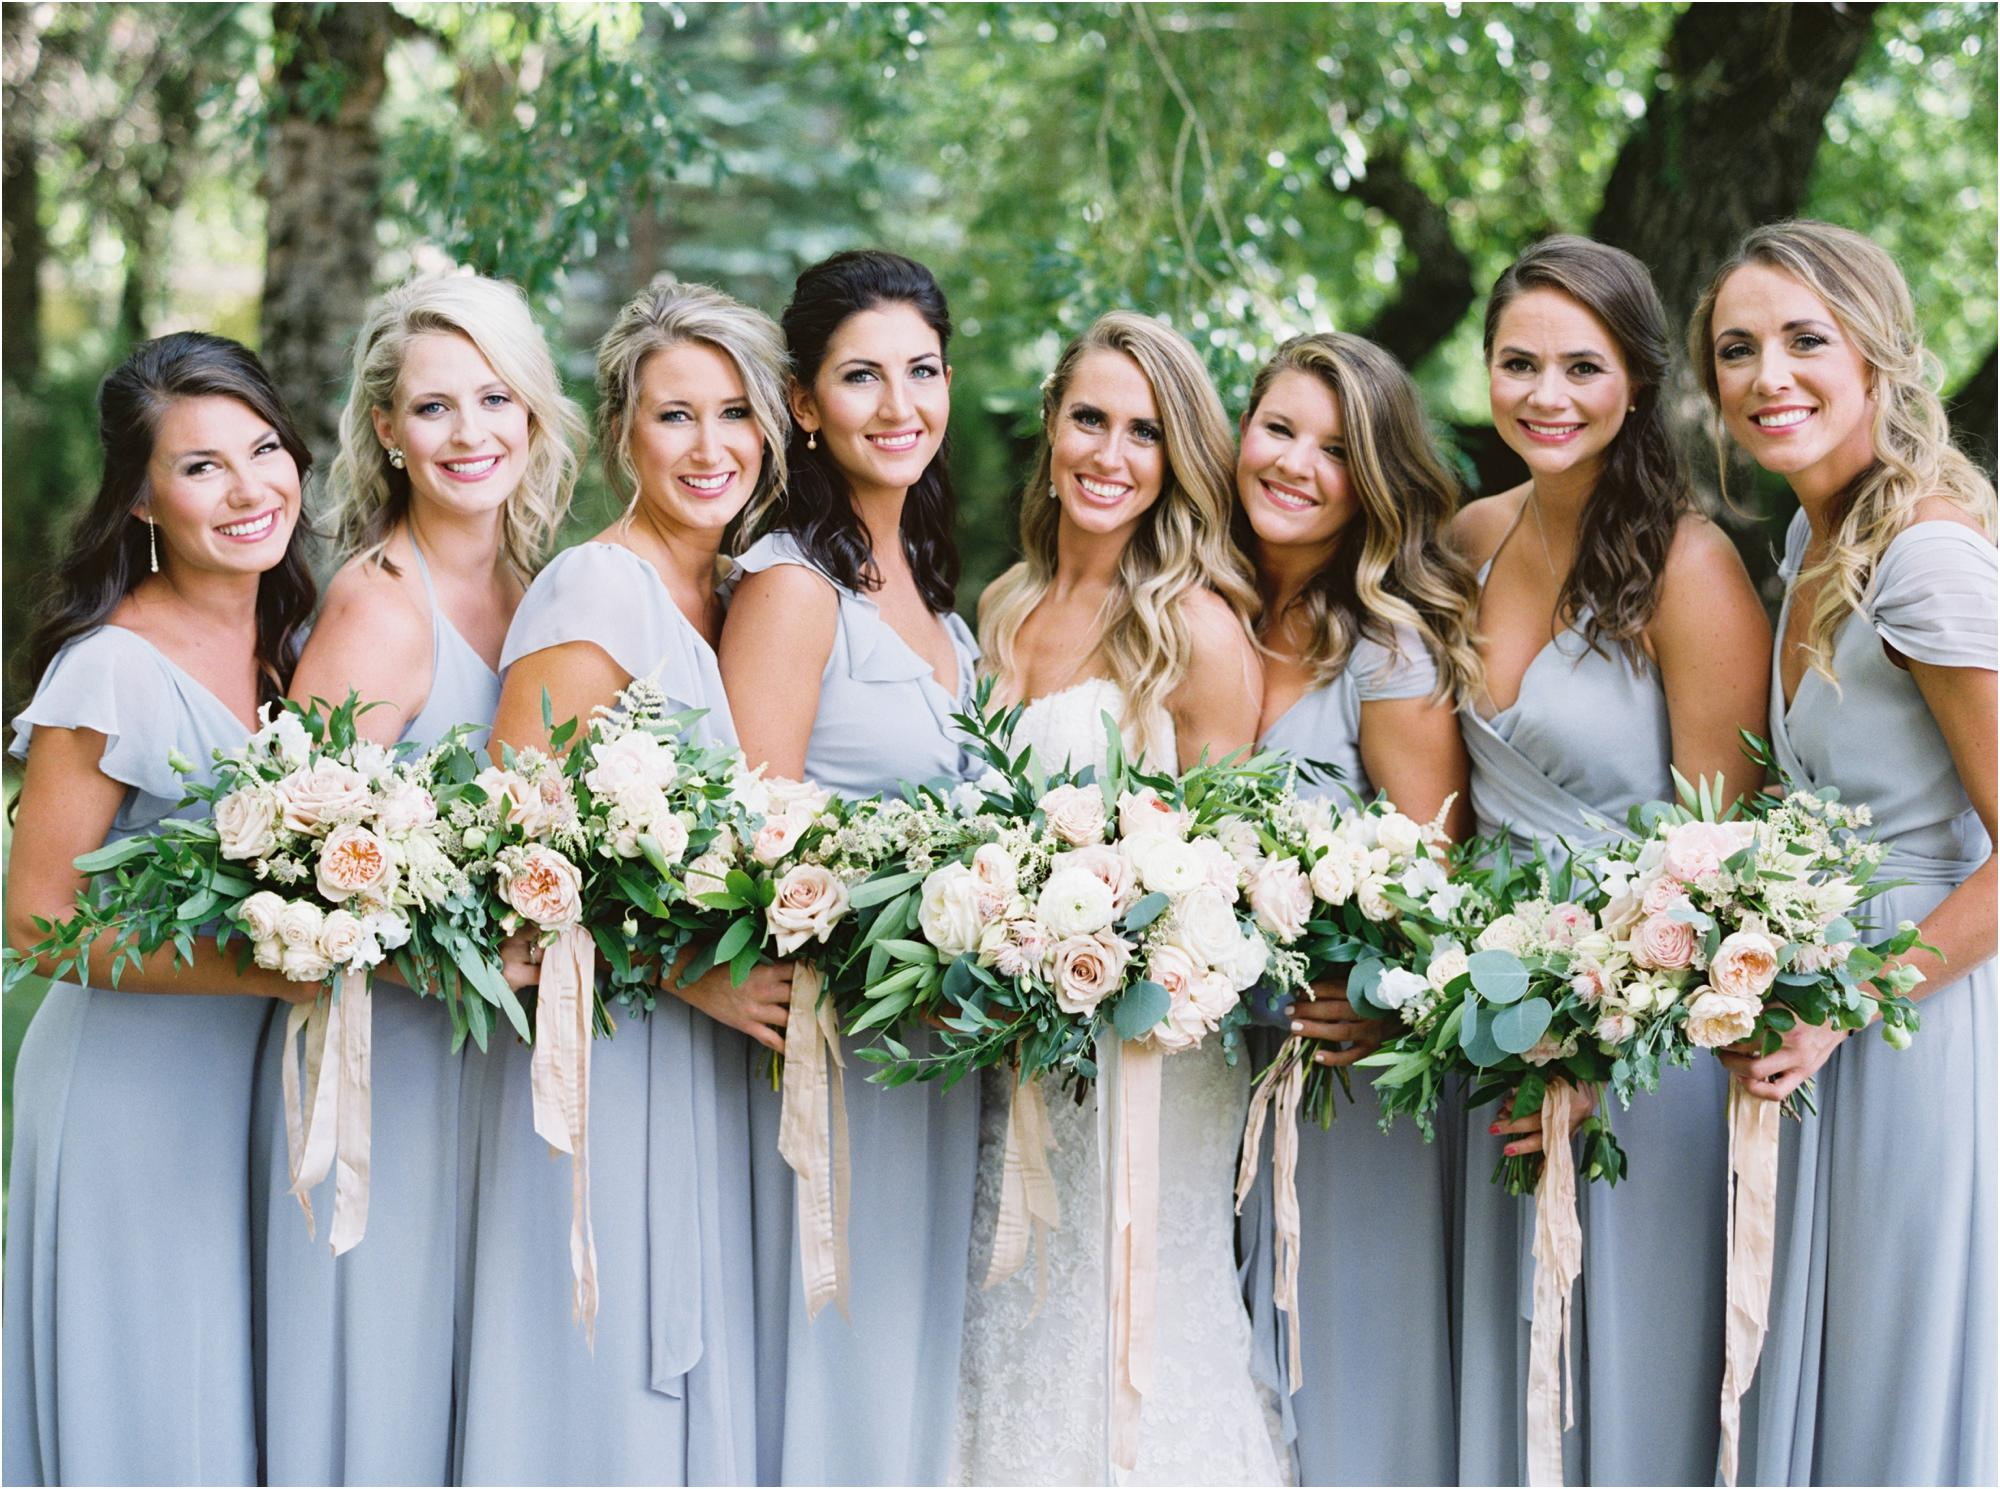 Wedding at The Lodge at Whitefish Lake, Whitefish, Montana with Goldfinch Events & Design http://goldfinchevents.com and Mum's Flowers http://mumsflowers.net